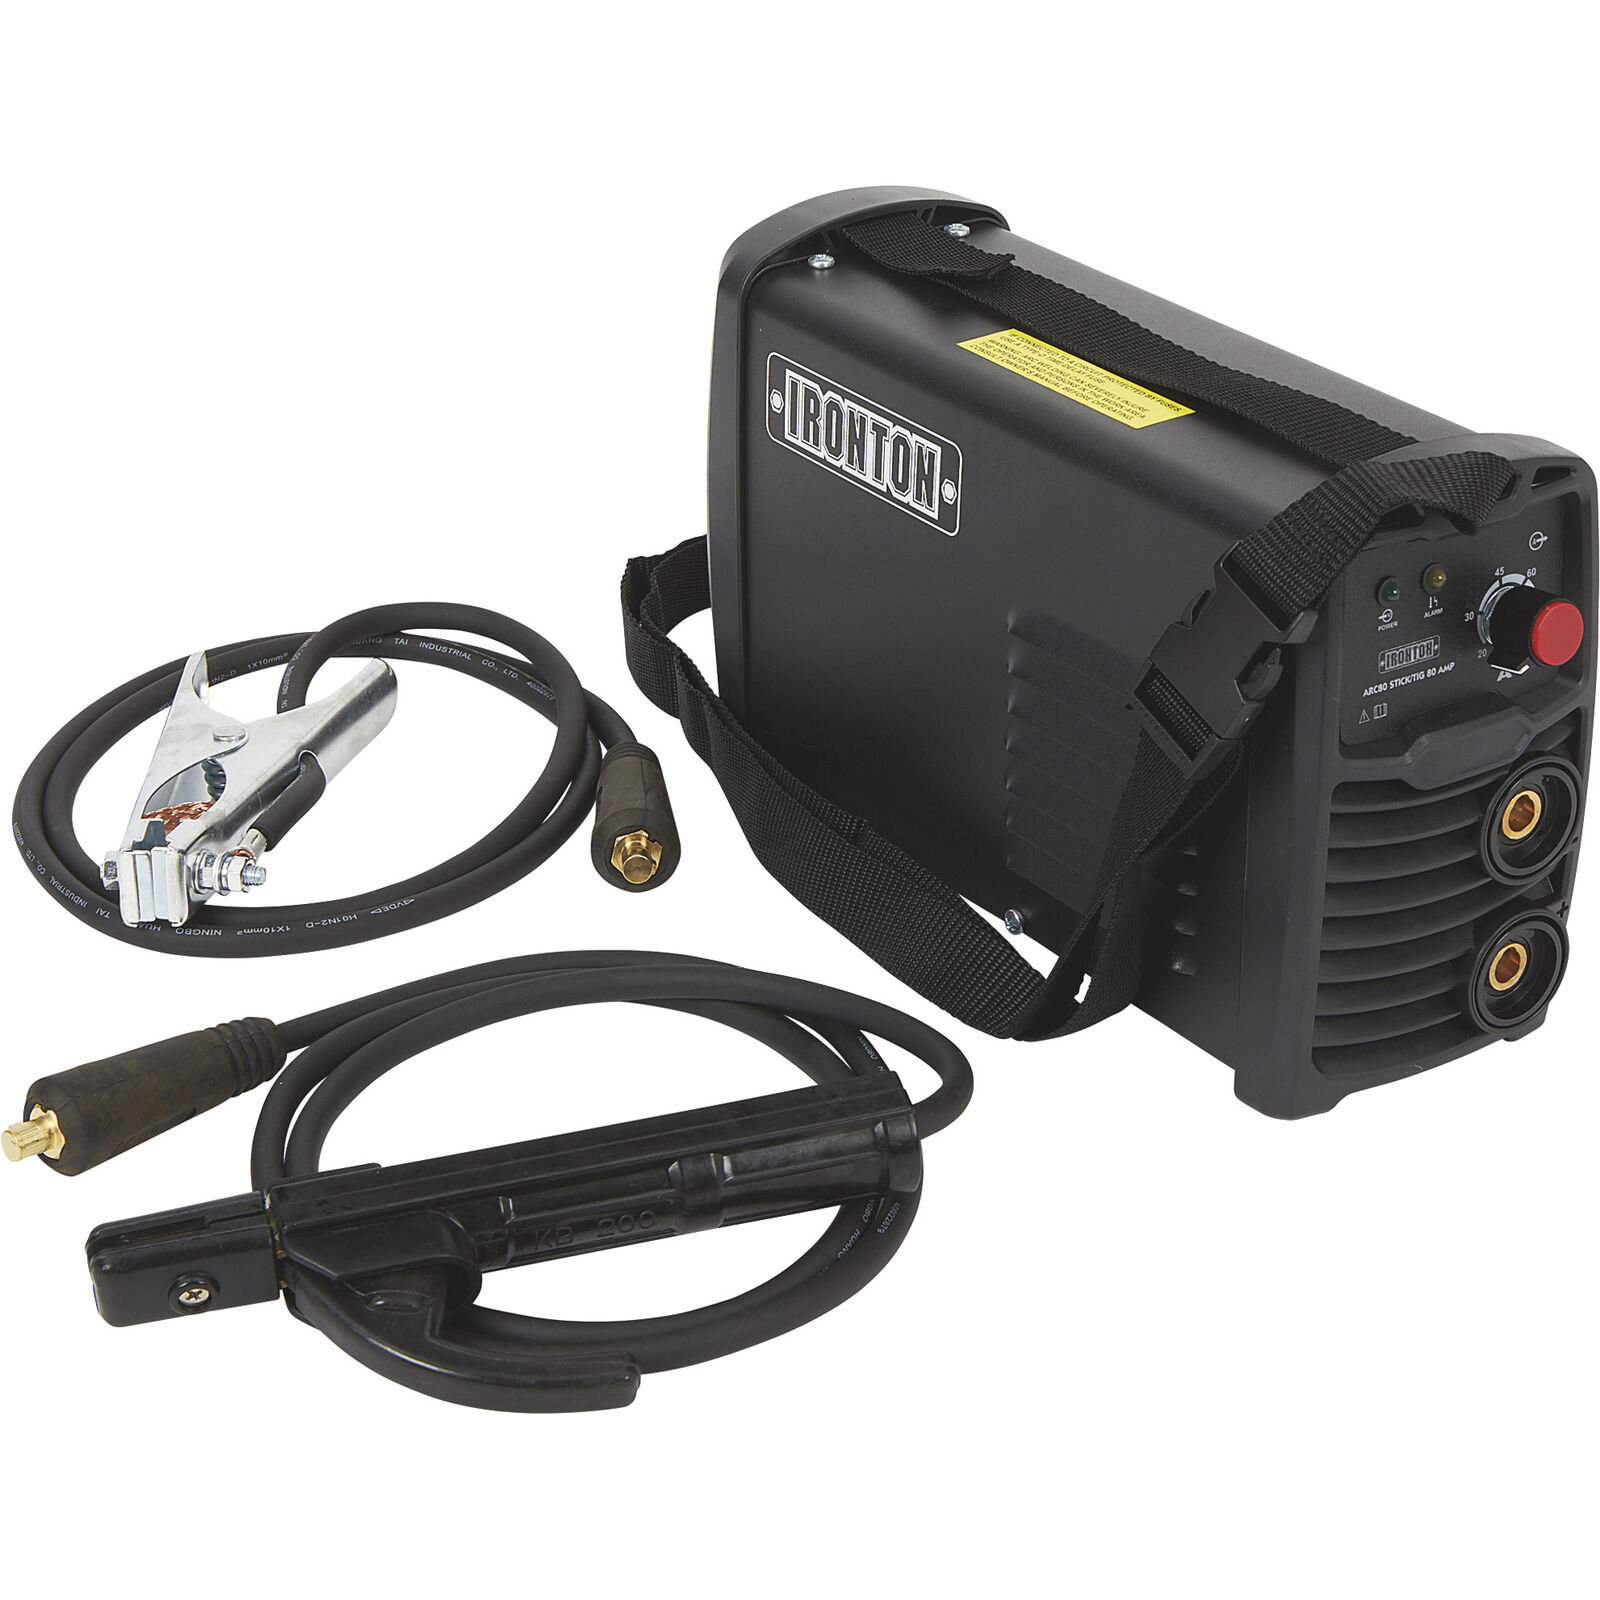 Ironton ARC80 Stick Welder w/ TIG funct — Inverter, 120 Volt, 20–80 Amp Output. Buy it now for 89.99